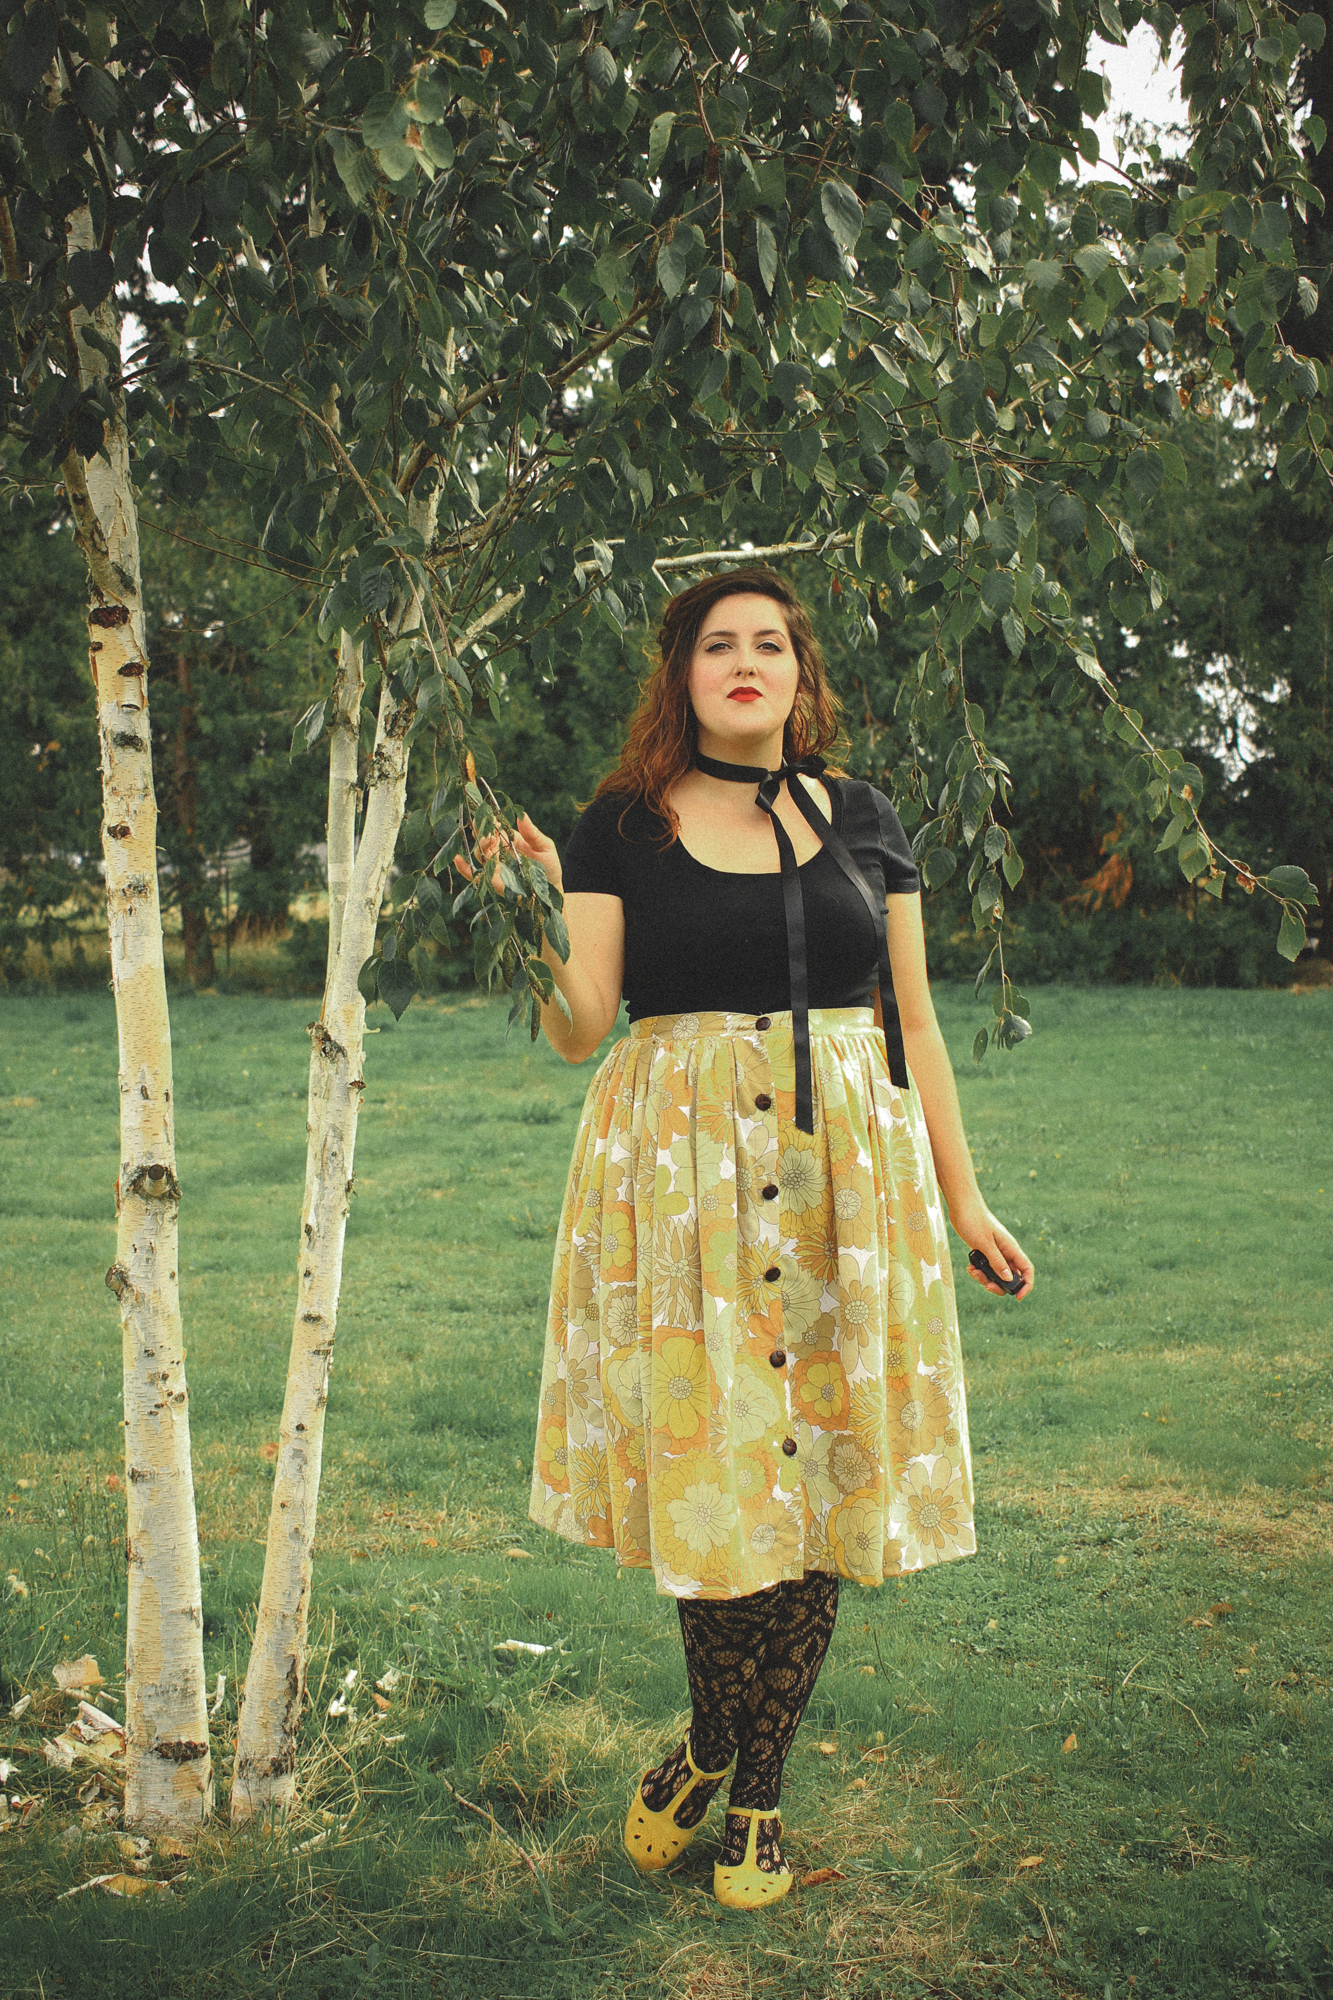 woman wearing a black top, yellow floral skirt, and patterned tights in a retro style